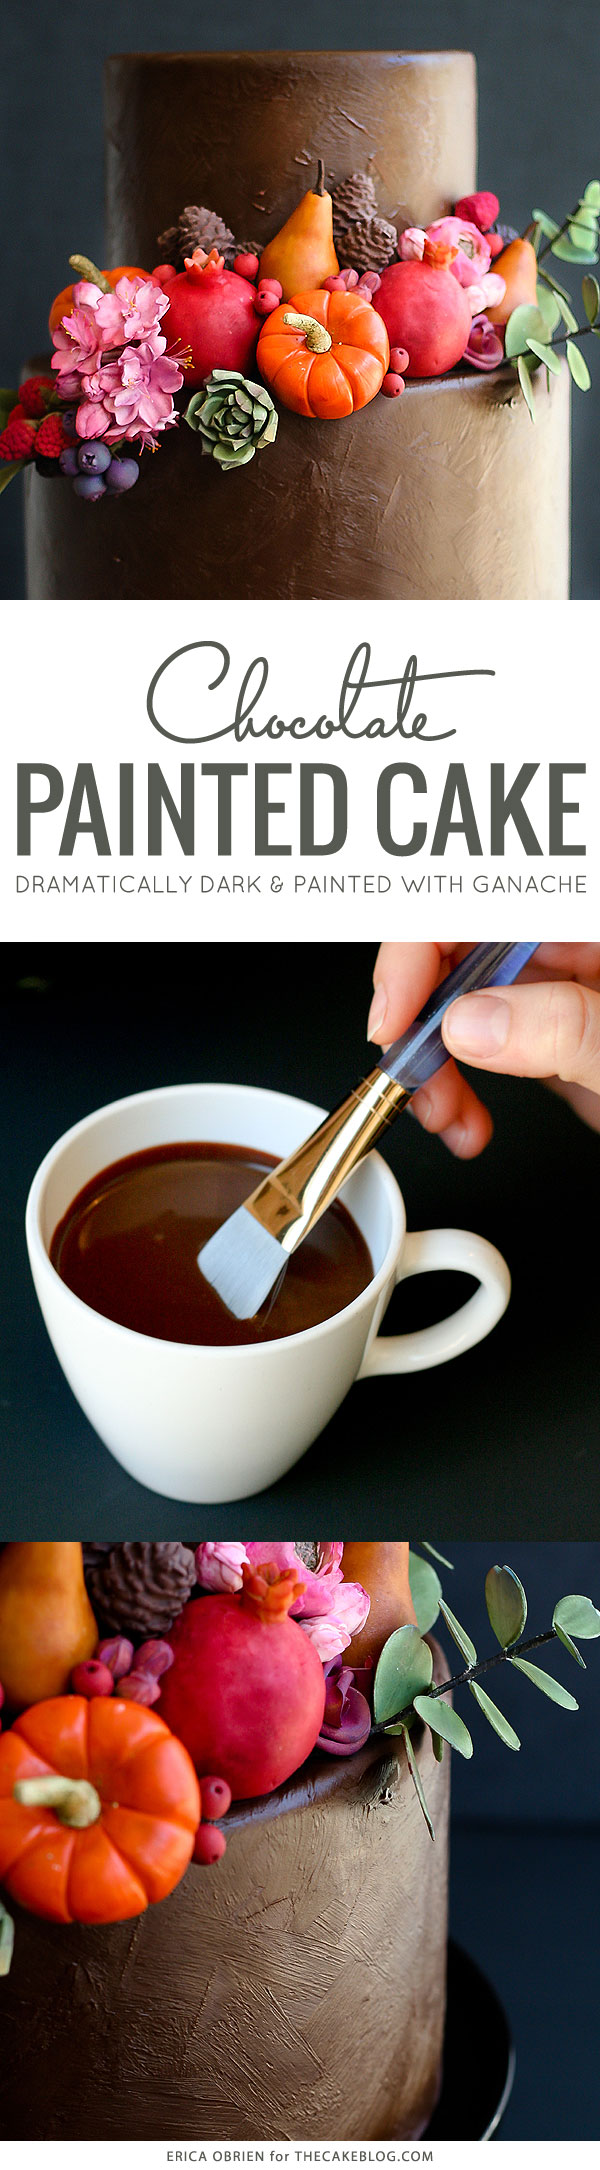 How to paint a cake with chocolate | Beautifully dark fall harvest cake with pumpkins, pears, pomegranates, eucalyptus and sage, perfect for Thanksgiving | Erica OBrien for TheCakeBlog.com